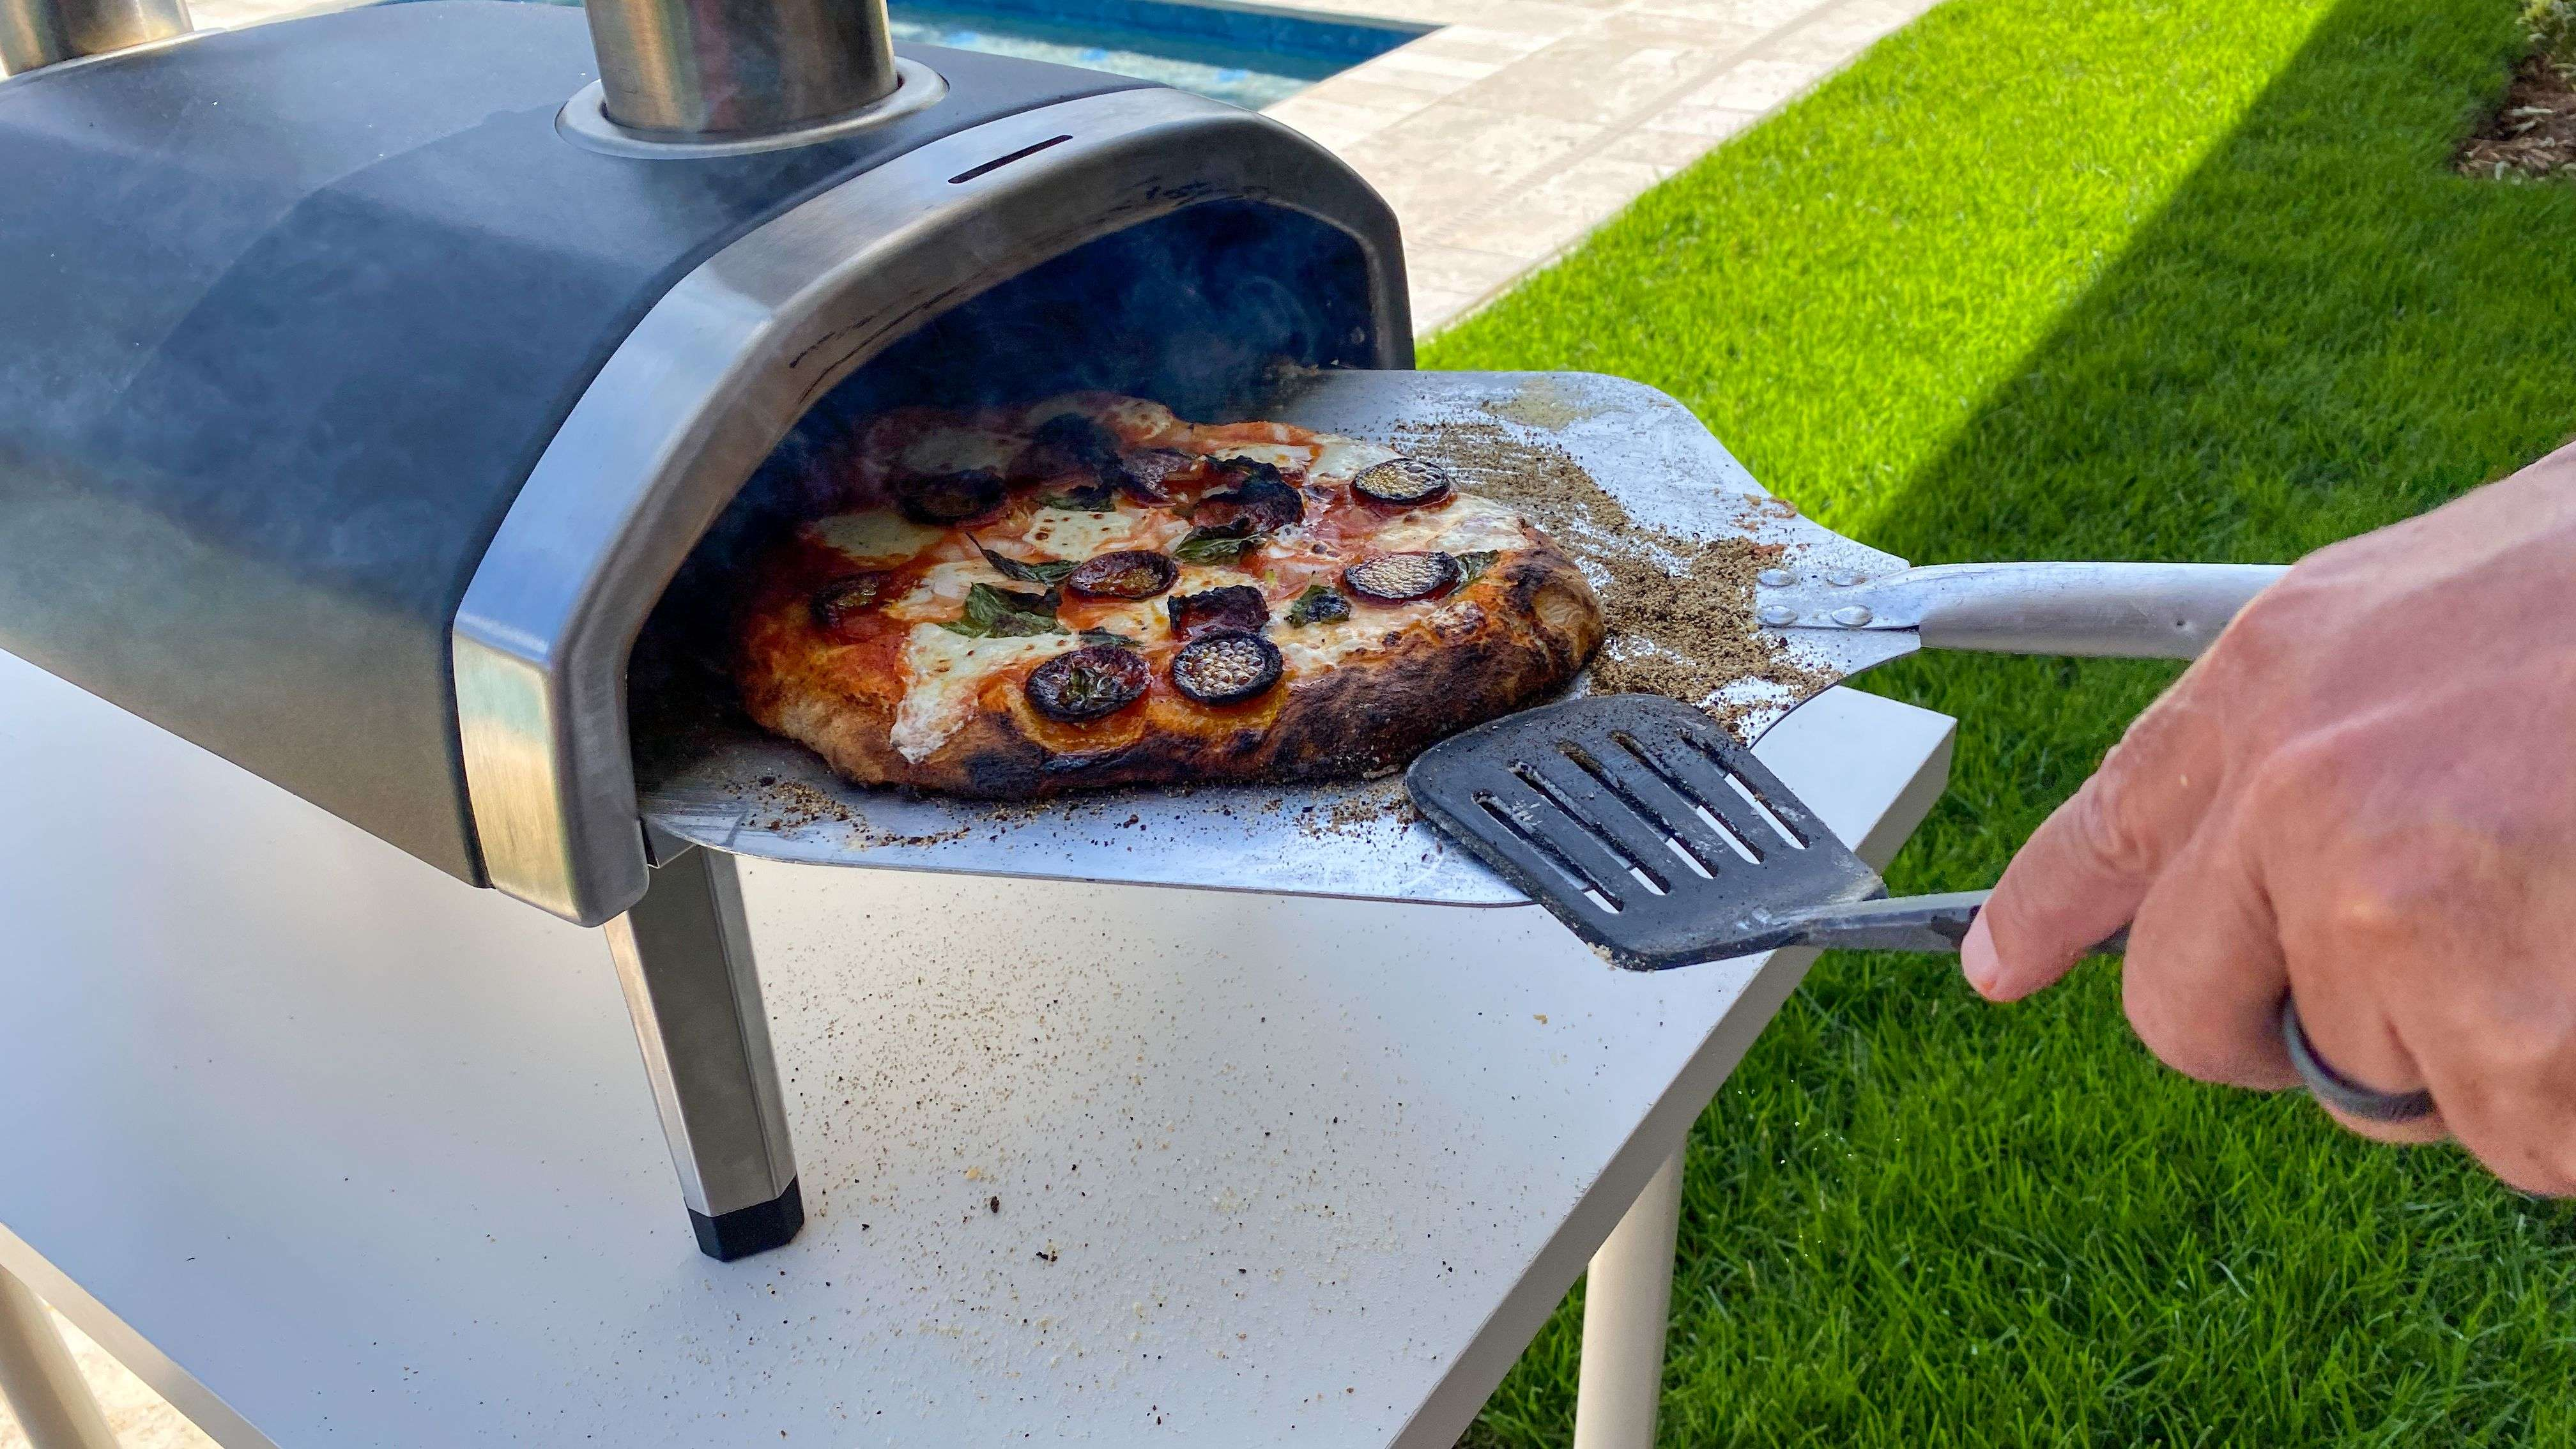 Pizza oven buying guide